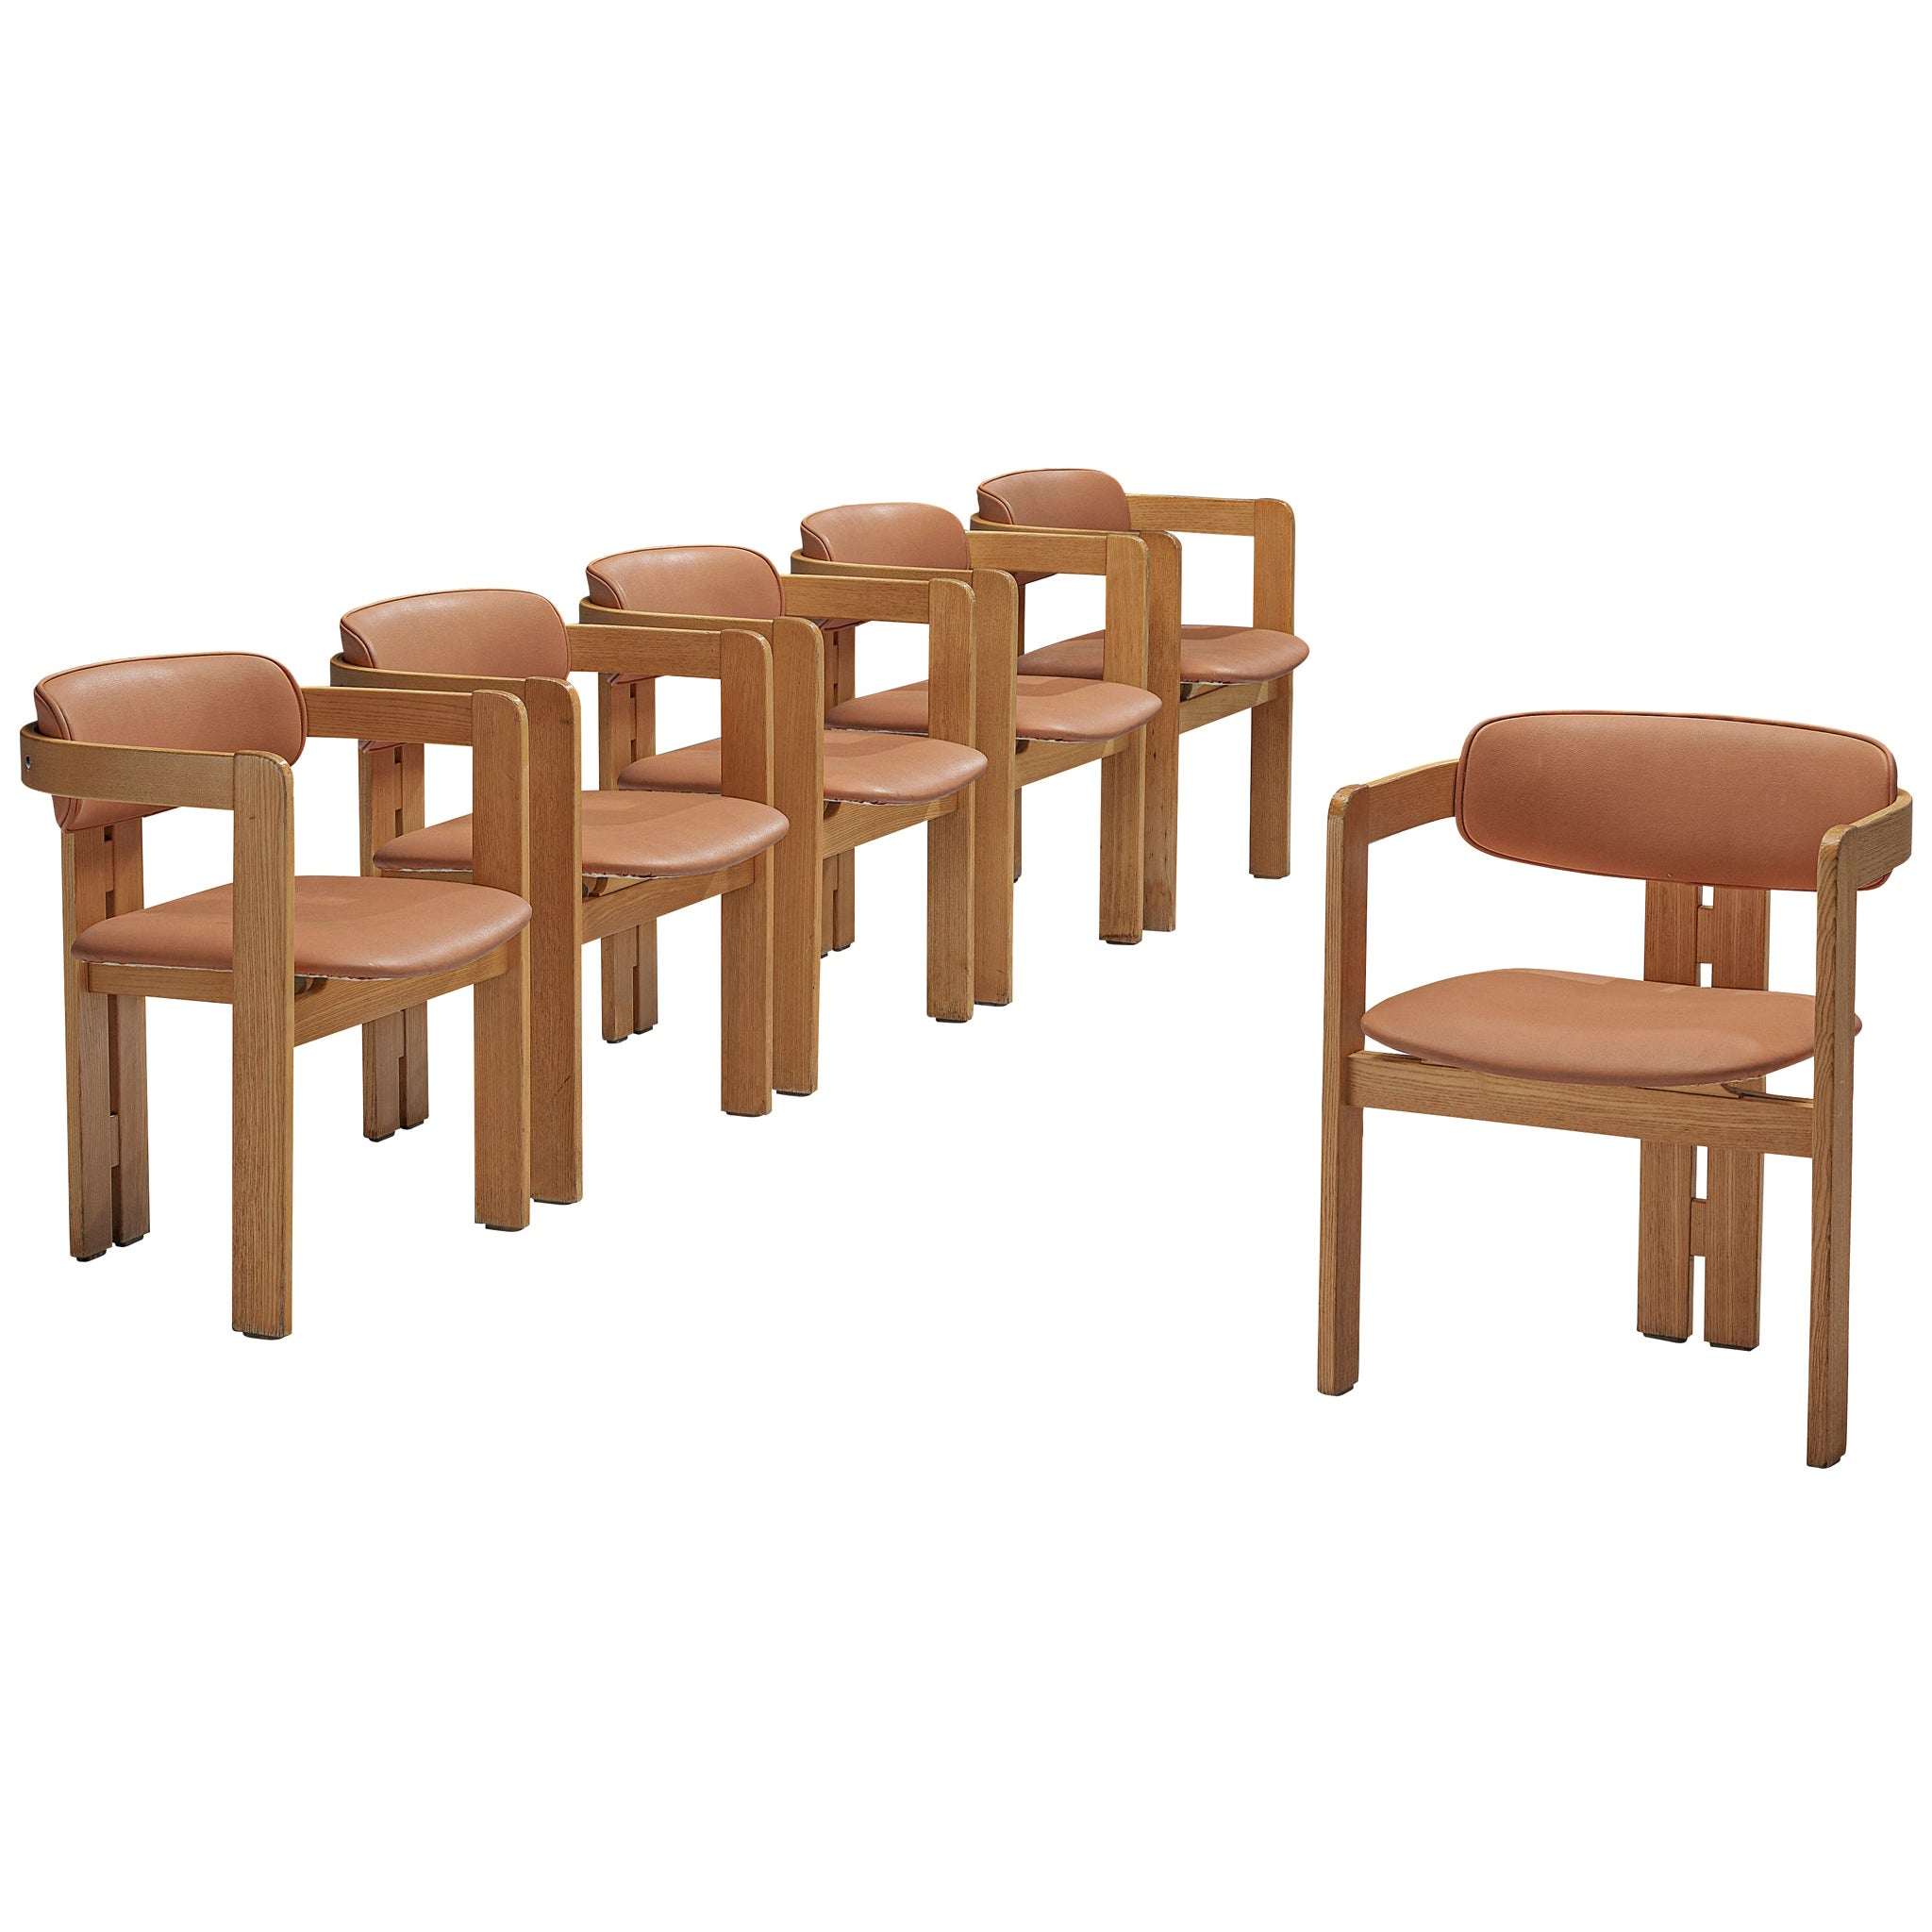 Set of Six Italian Armchairs with Architectural Bentwood Frames in Beech